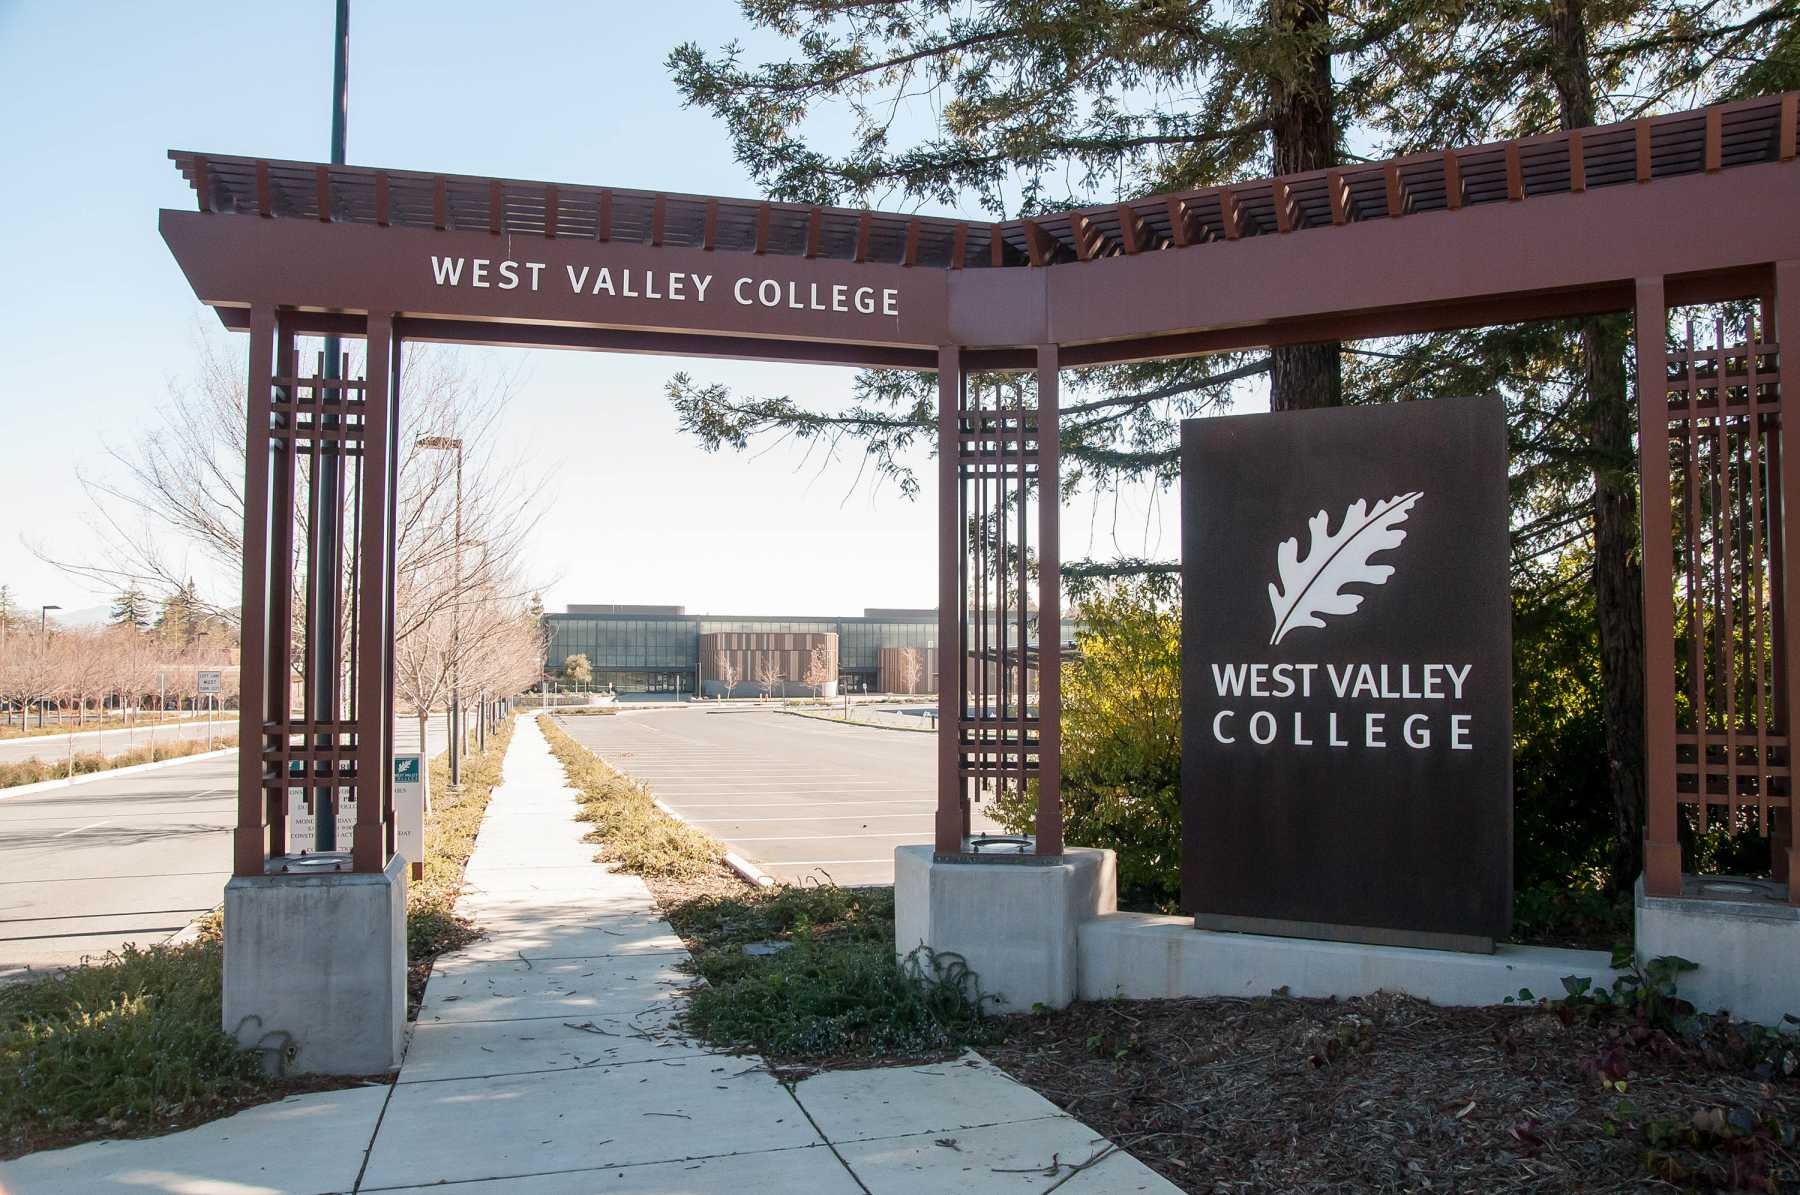 BREAKING: Saratoga West Valley College Evacuated For Bomb Threat | West Valley College